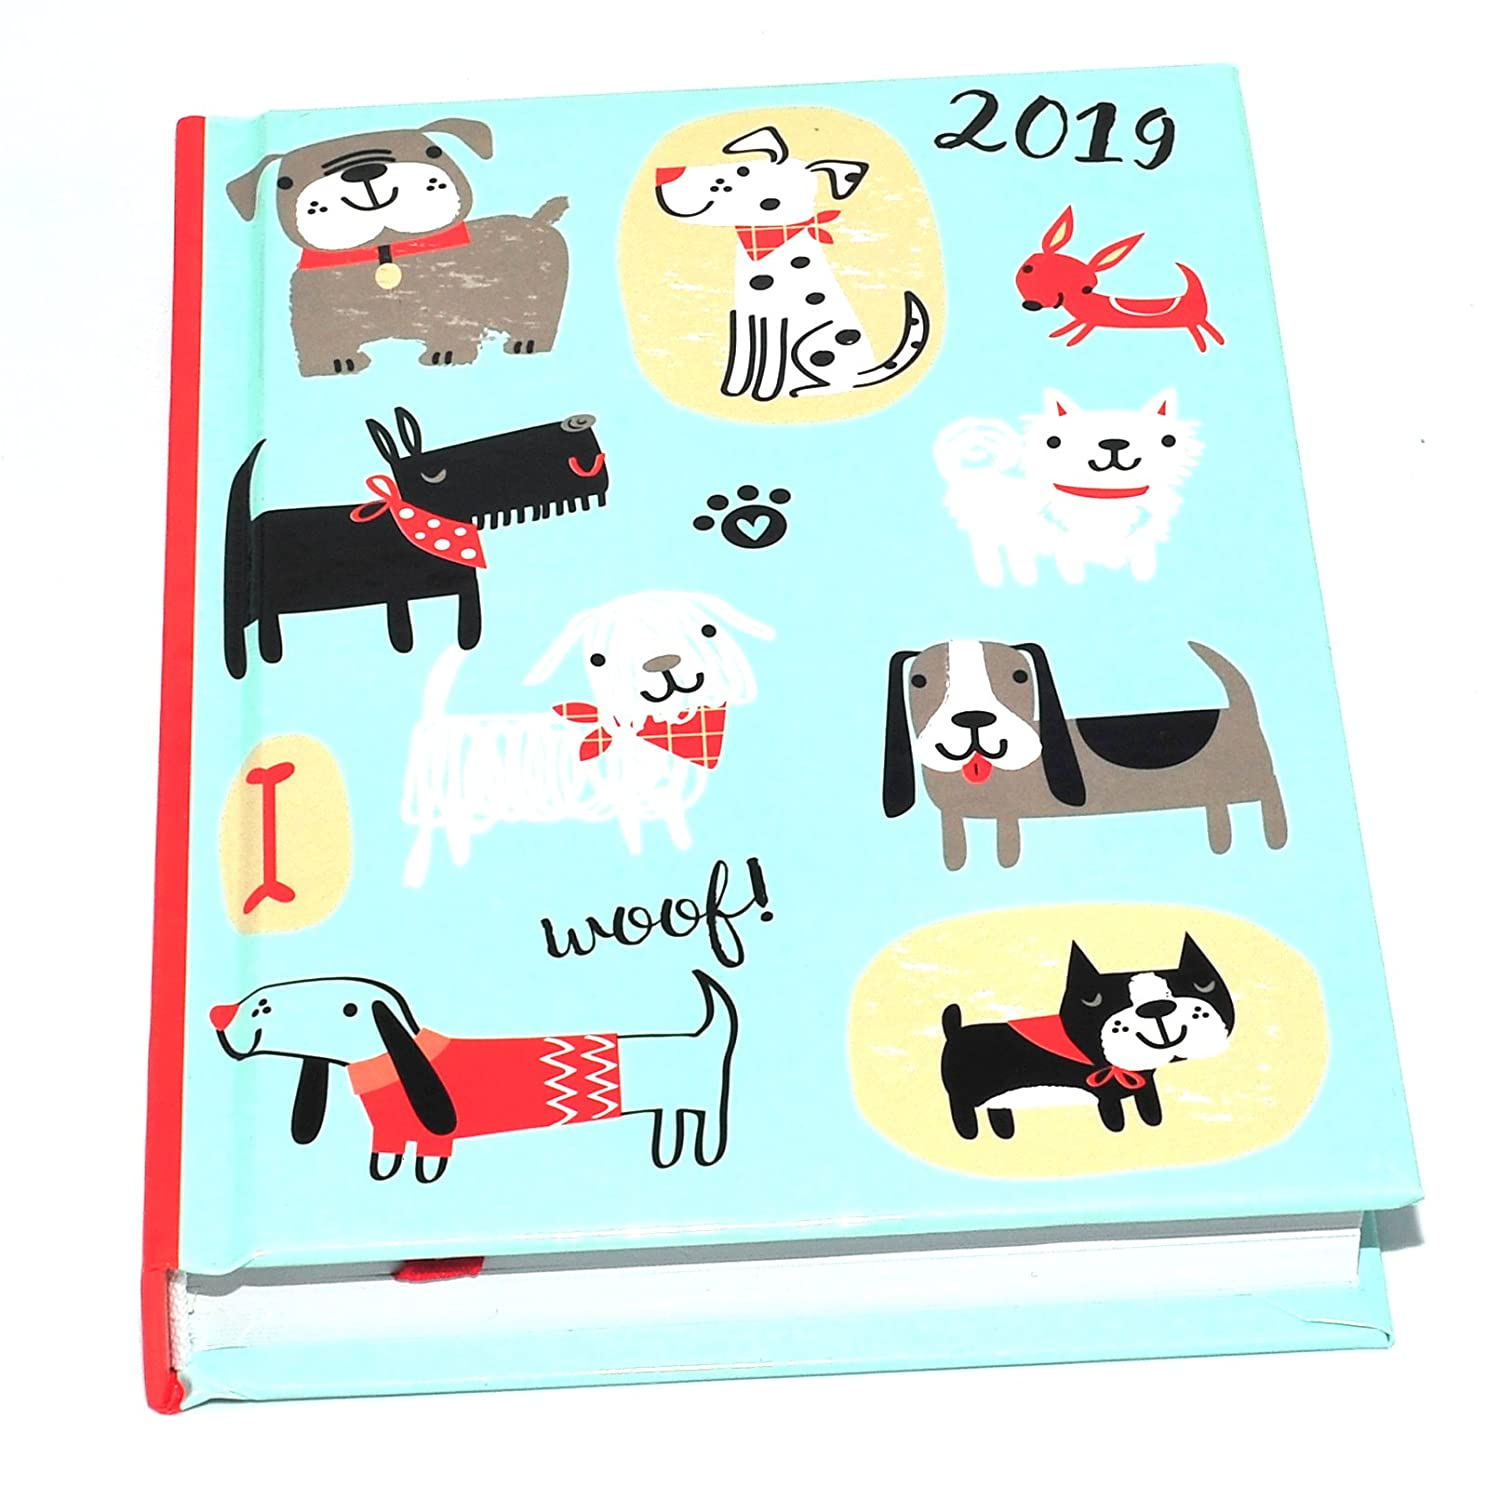 1x 2019 A6 One Day to Page Diary Hardback Cover Design at Random